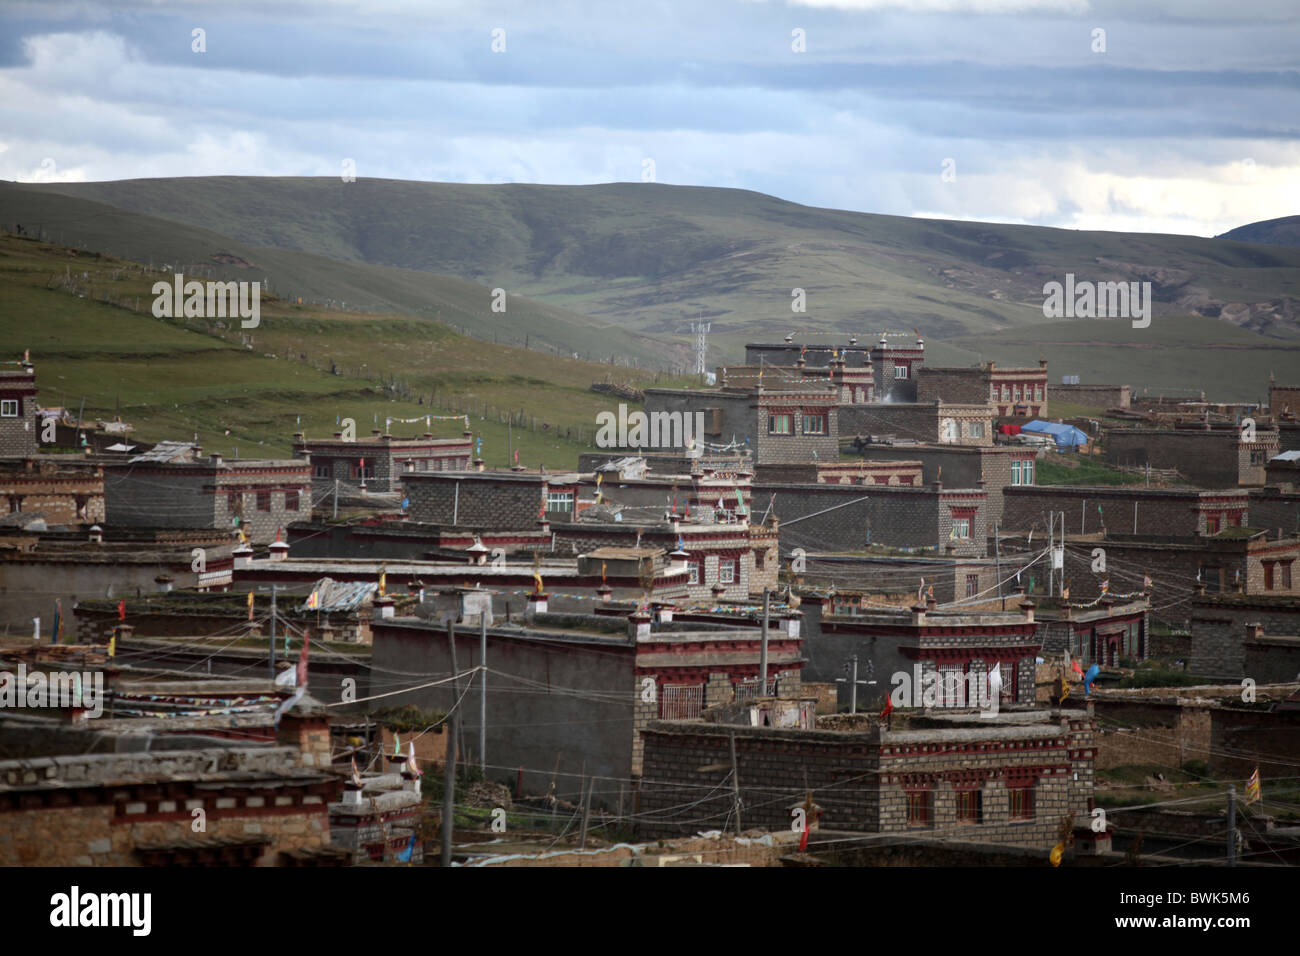 A view over of Litang, Sichuan province, southwest China - Stock Image